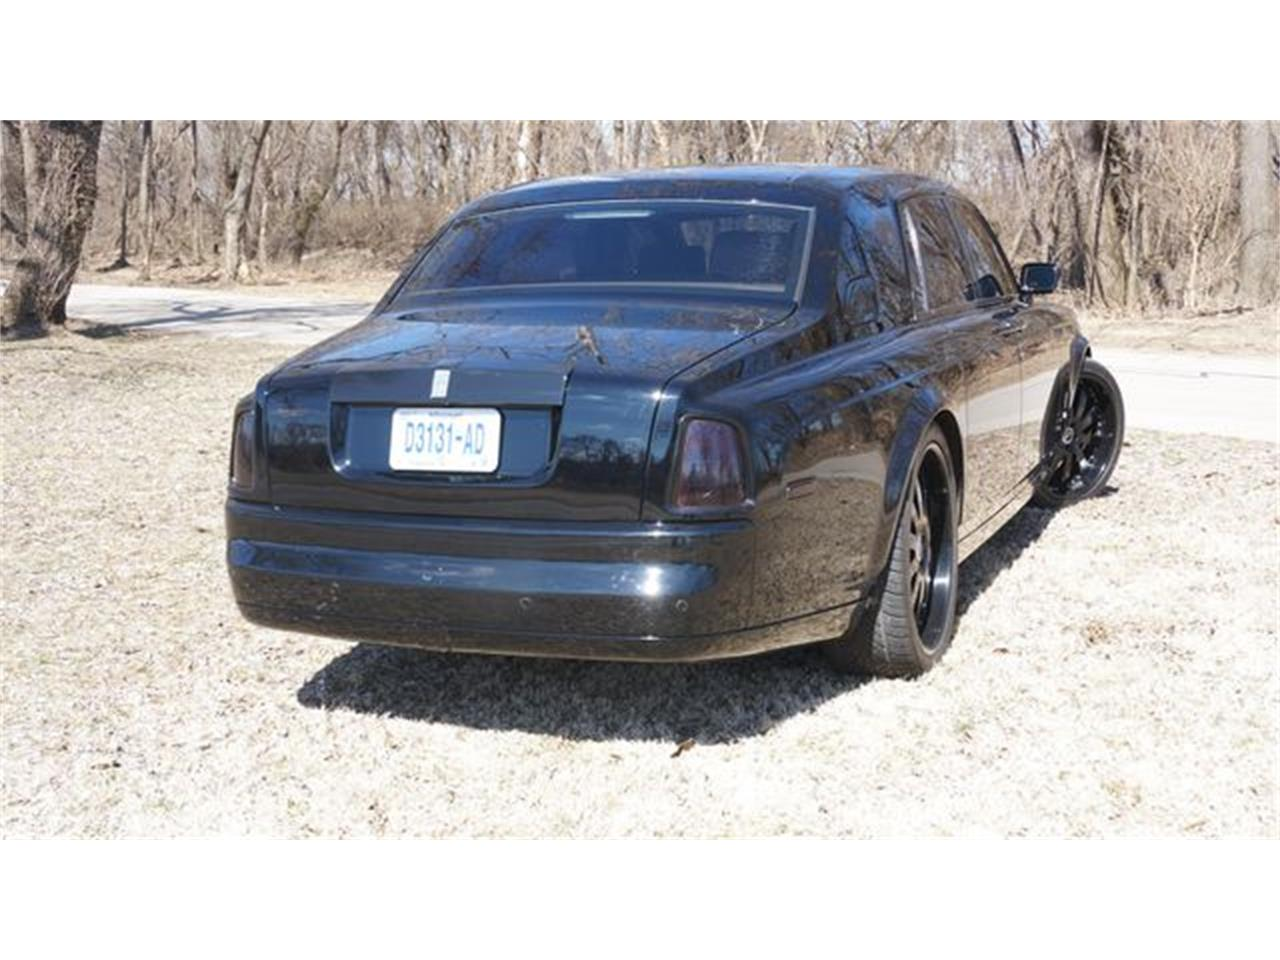 2006 Rolls-Royce Phantom for sale in Valley Park, MO – photo 10